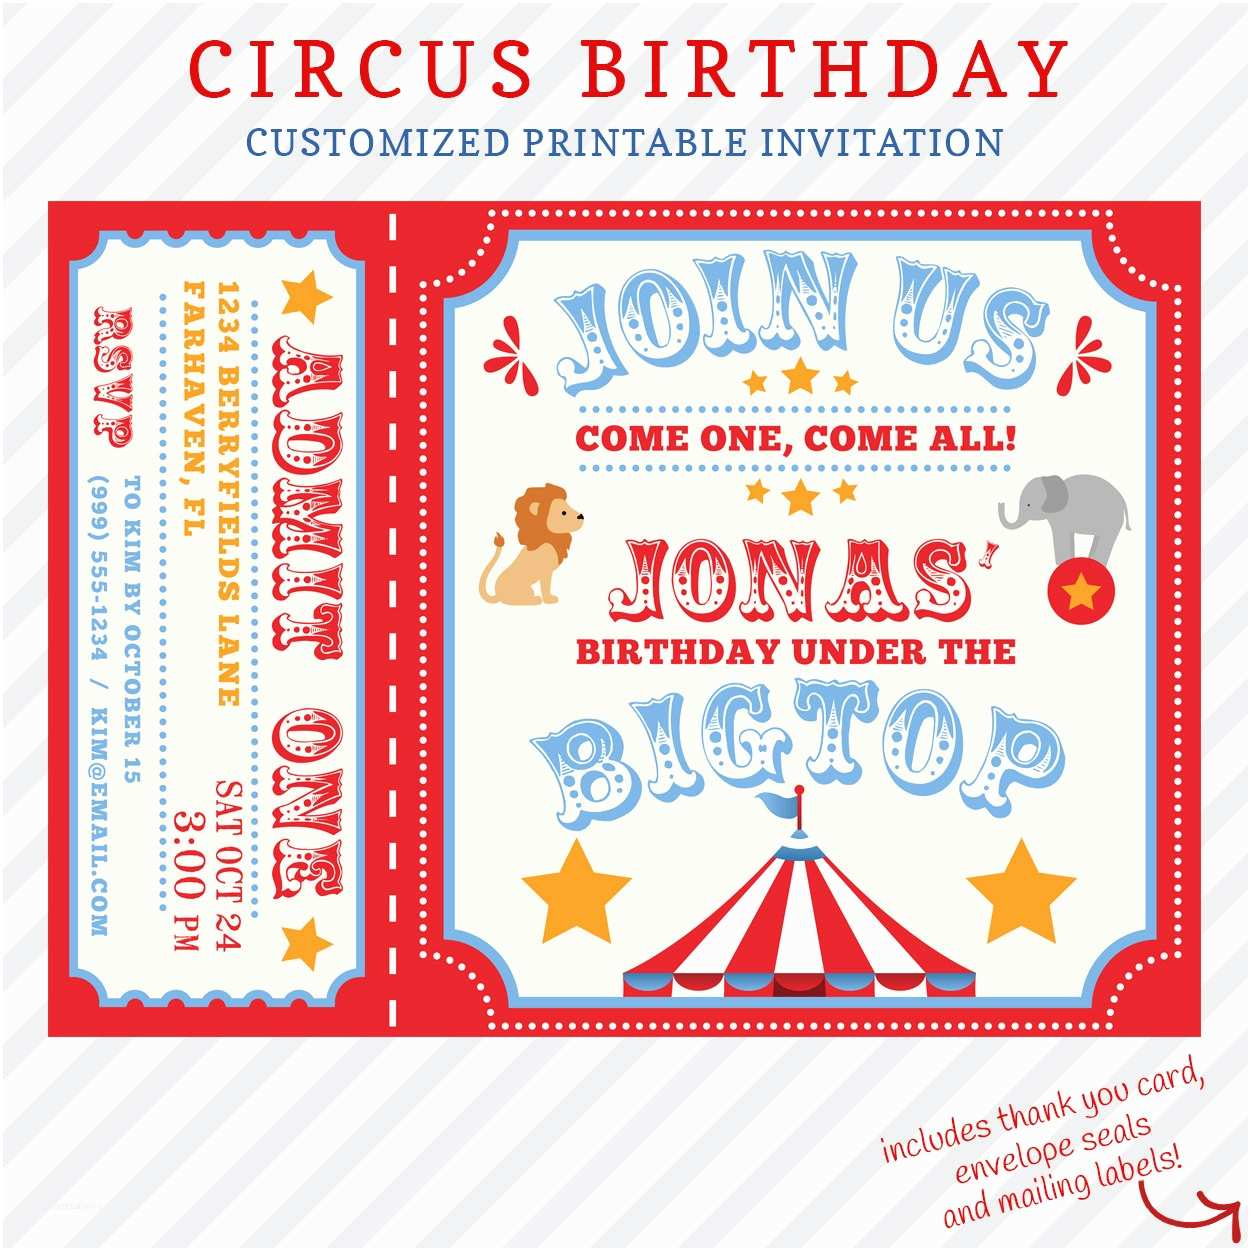 Customized Party Invitations Circus Birthday Invitation Printable Custom Invitation with